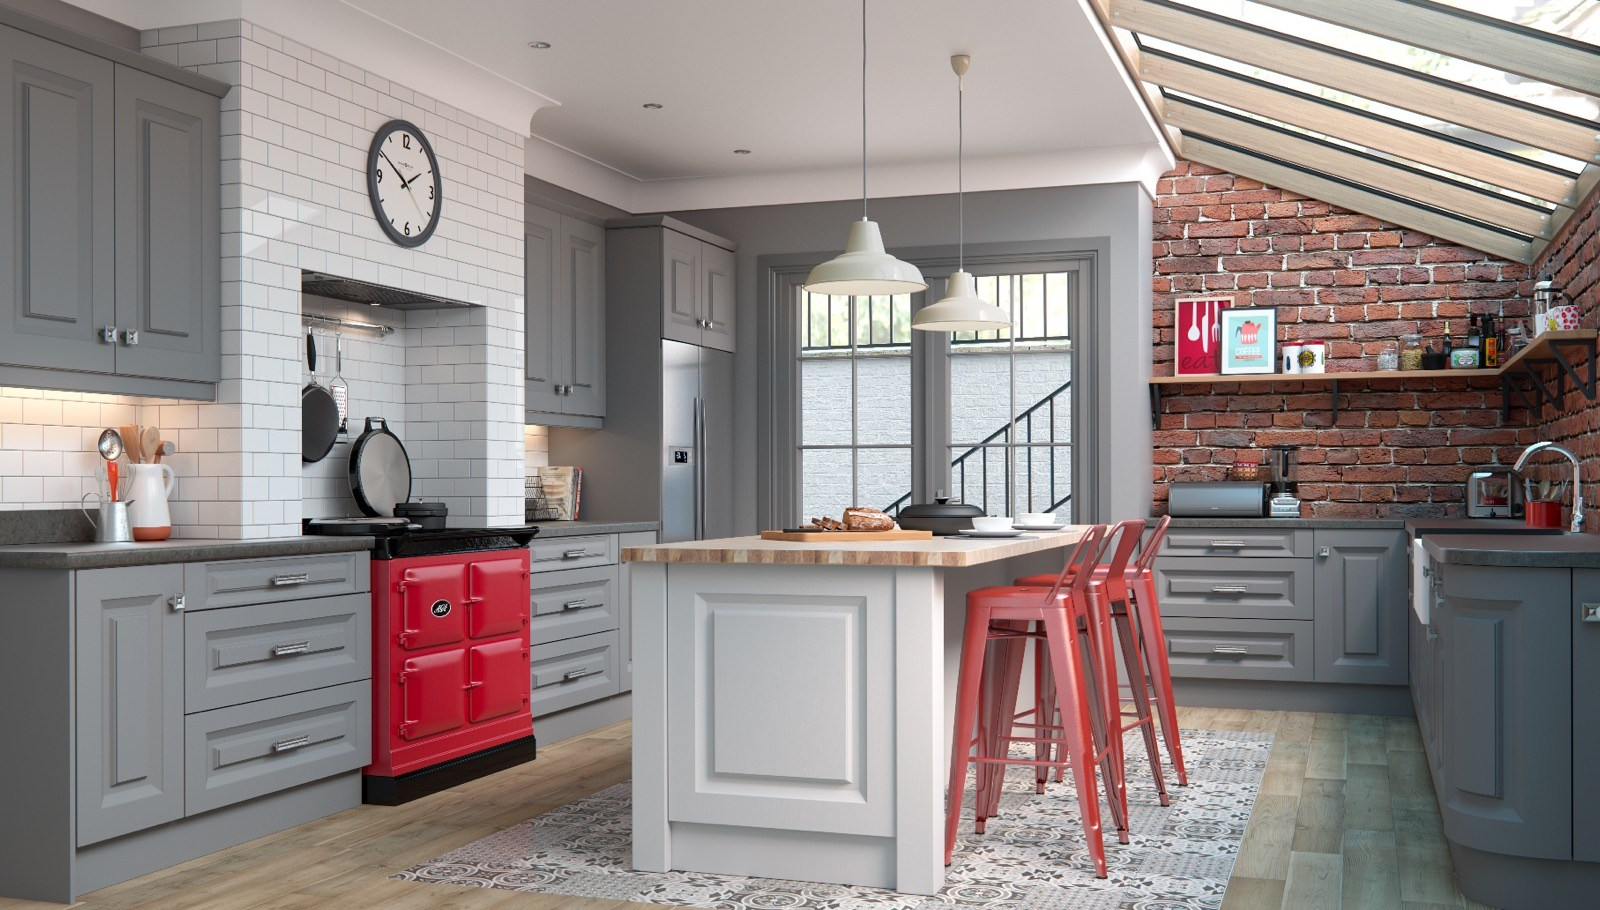 Red stools in modern kitchen with red Aga stove